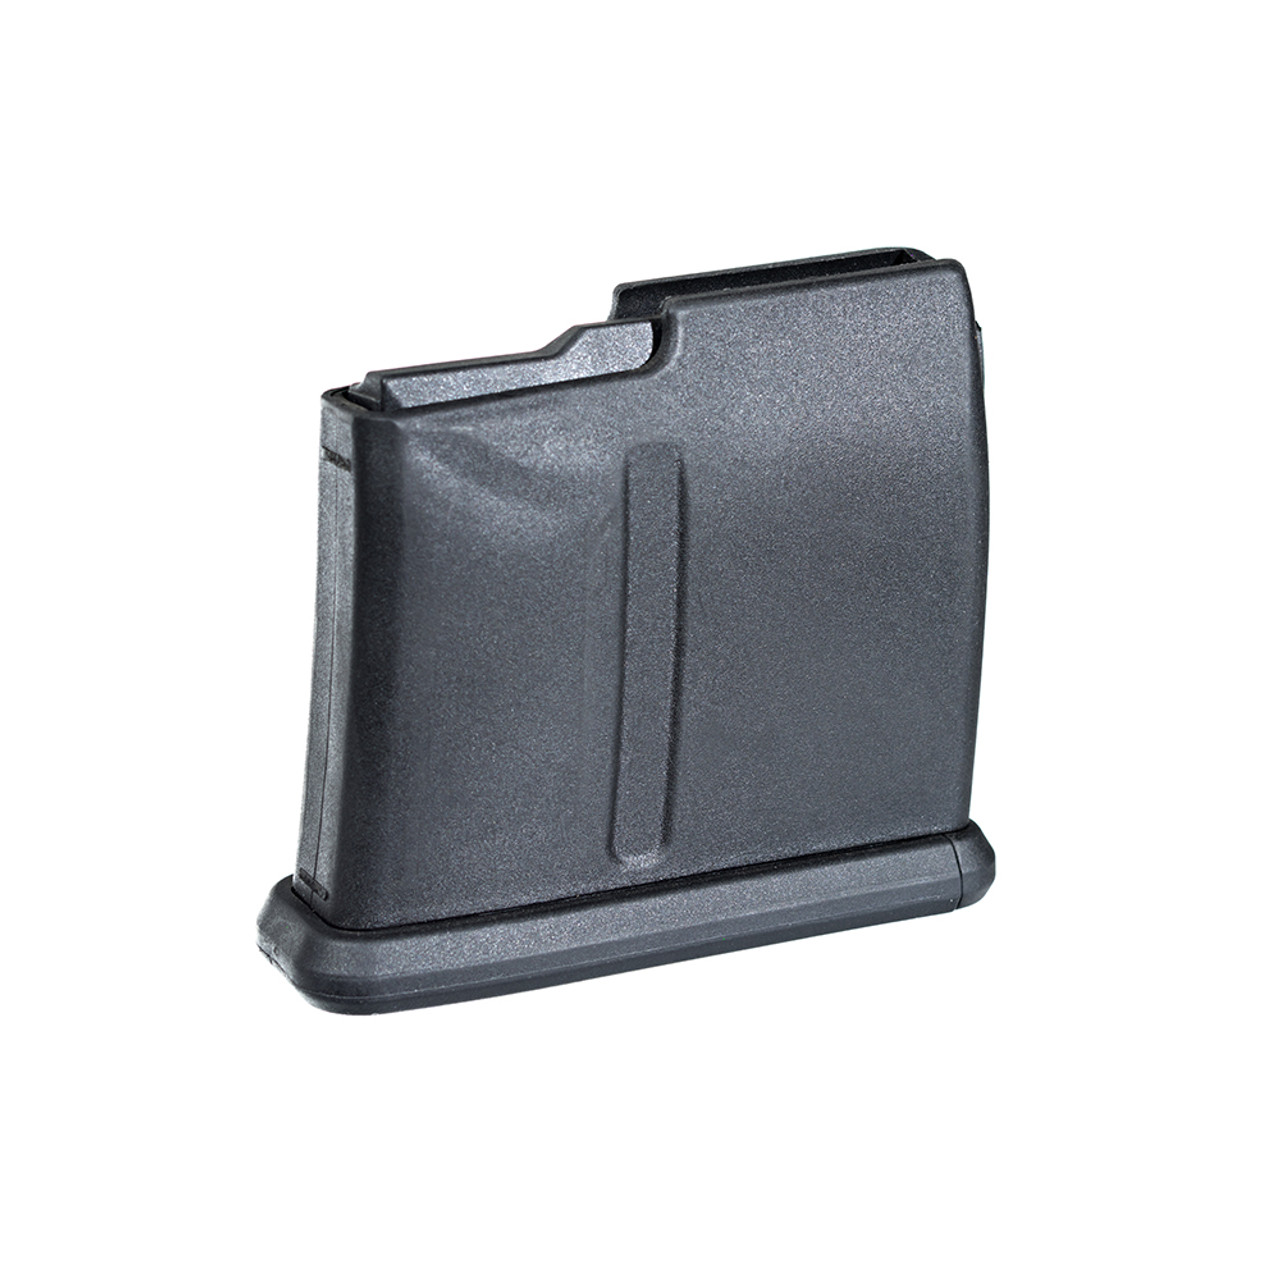 Archangel® Magnum Caliber .300 WIN, 7mm Remington® Magnum Magazine for AA700MLA & AA1500MLA Stocks (6) Rd with (5) Rd Limiter- Black Polymer